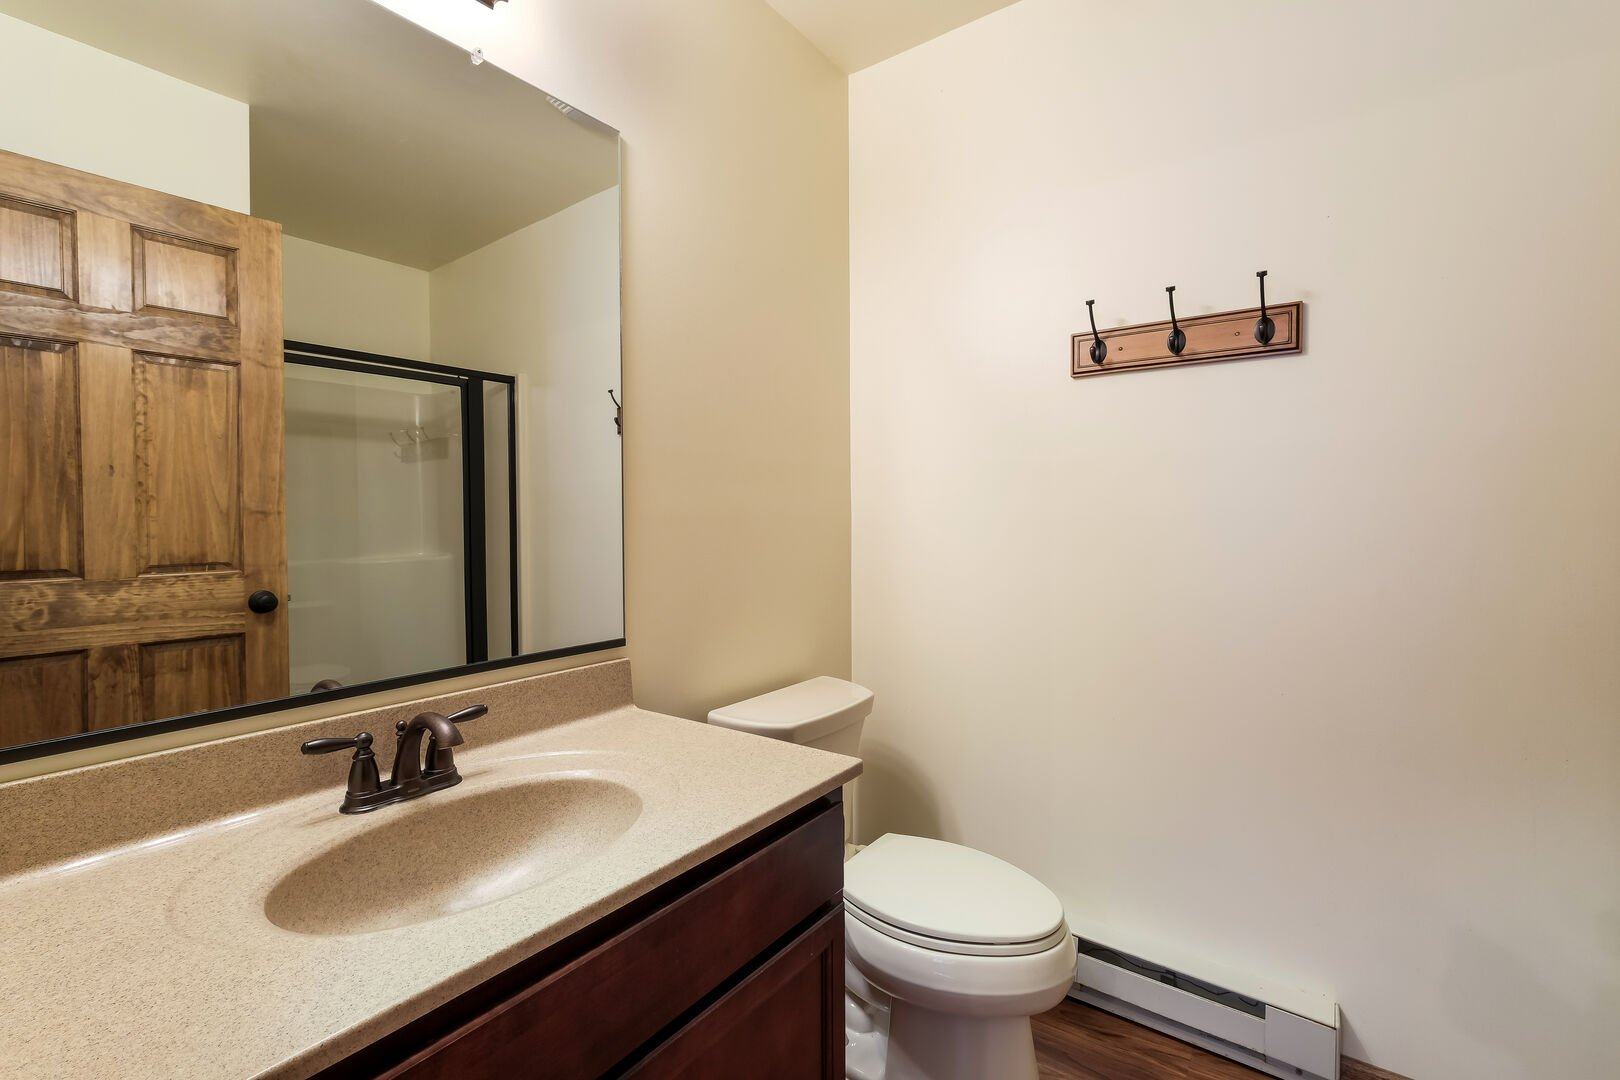 Toilet, sink, and mirror in a rental bathroom.